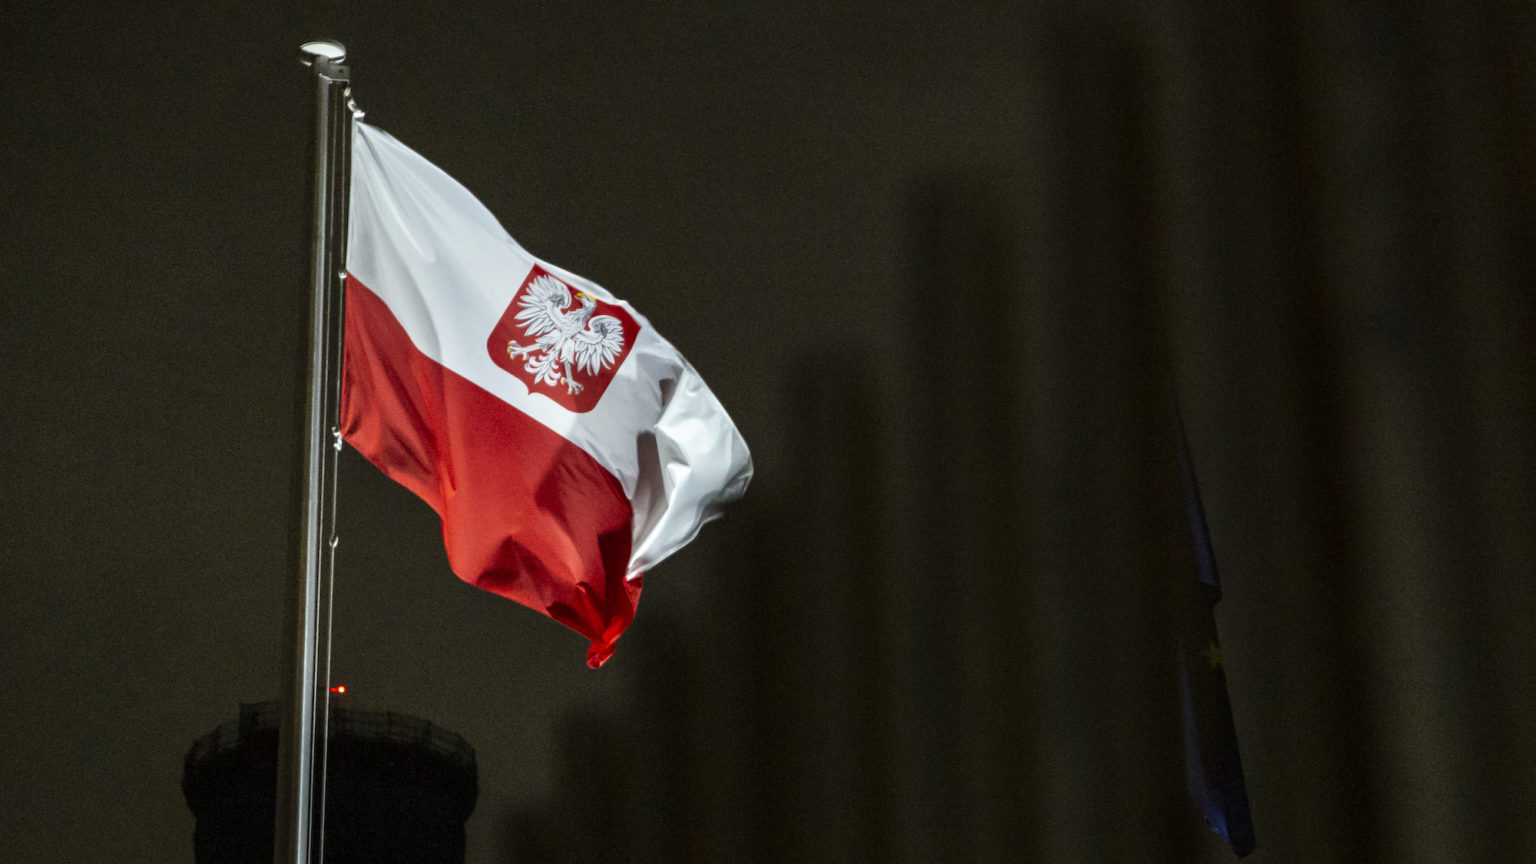 Why we must stand with Poland